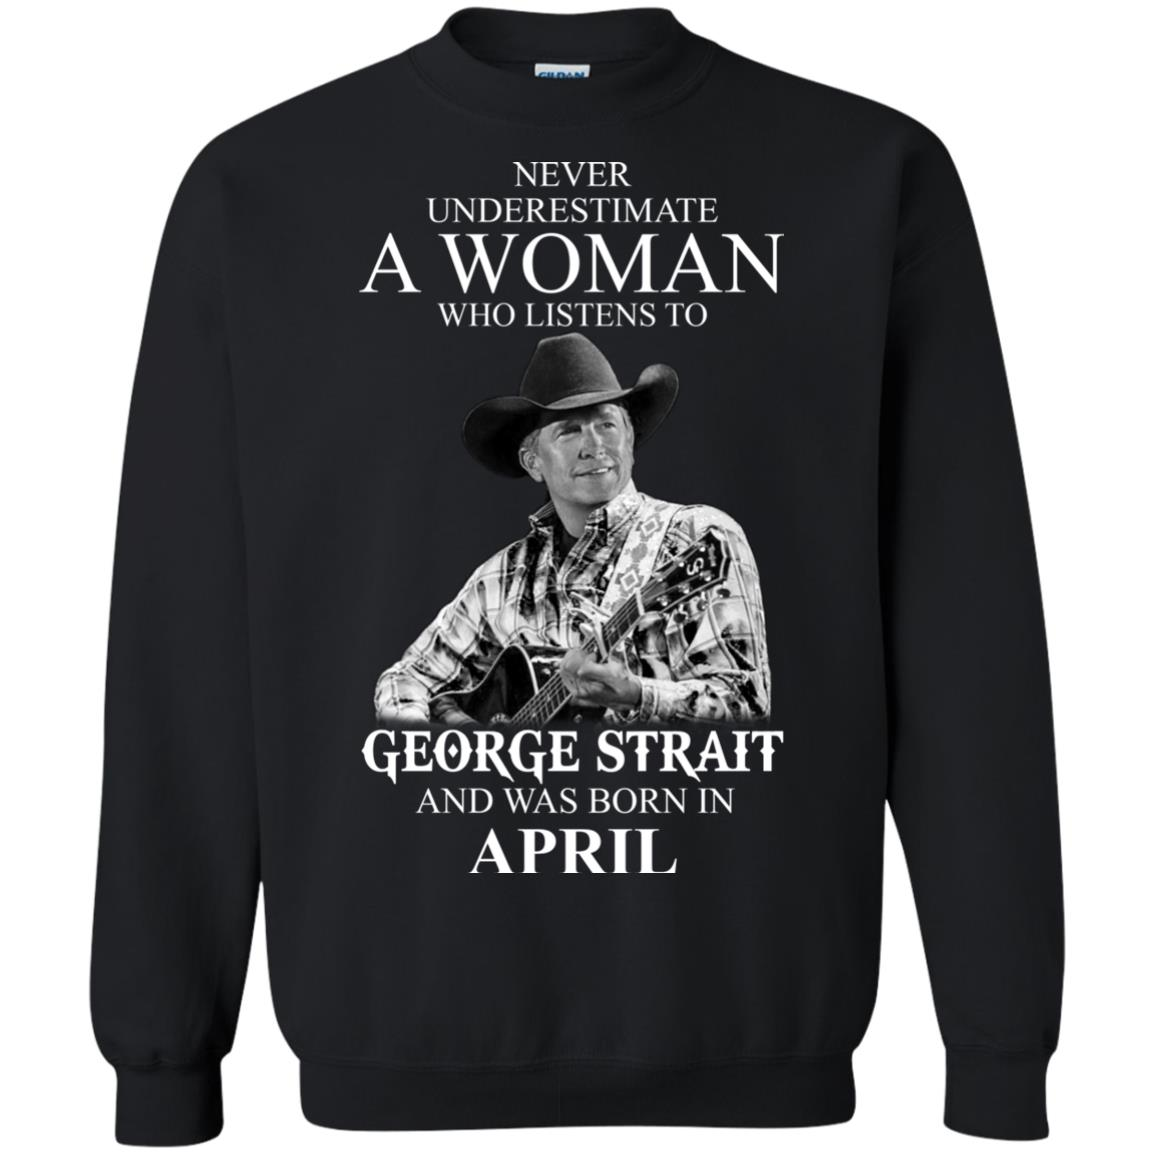 image 428 - Never Underestimate A Woman Who Listens To George Strait And Was Born In April shirt